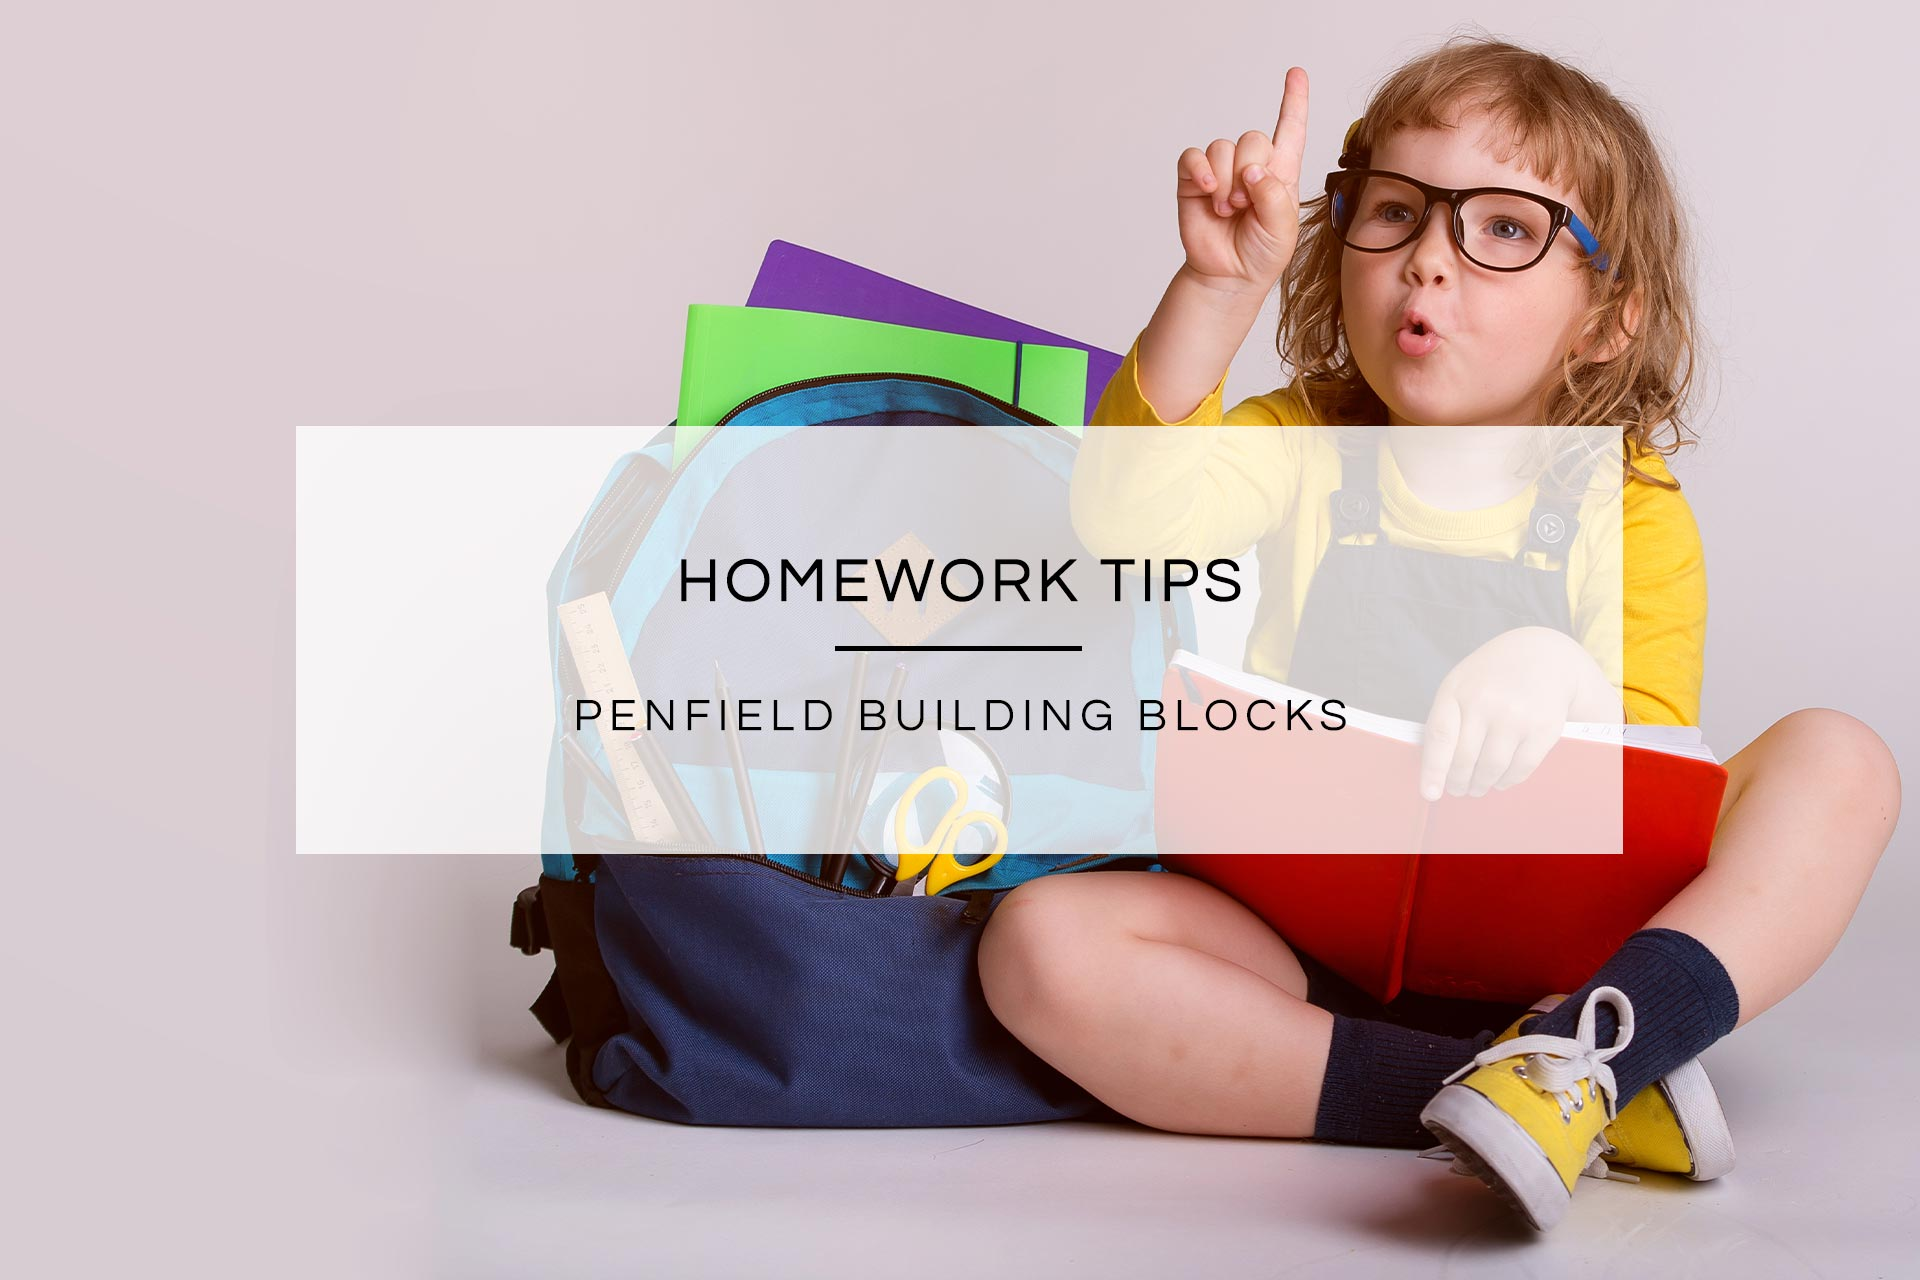 Homework Tips | Penfield Building Blocks